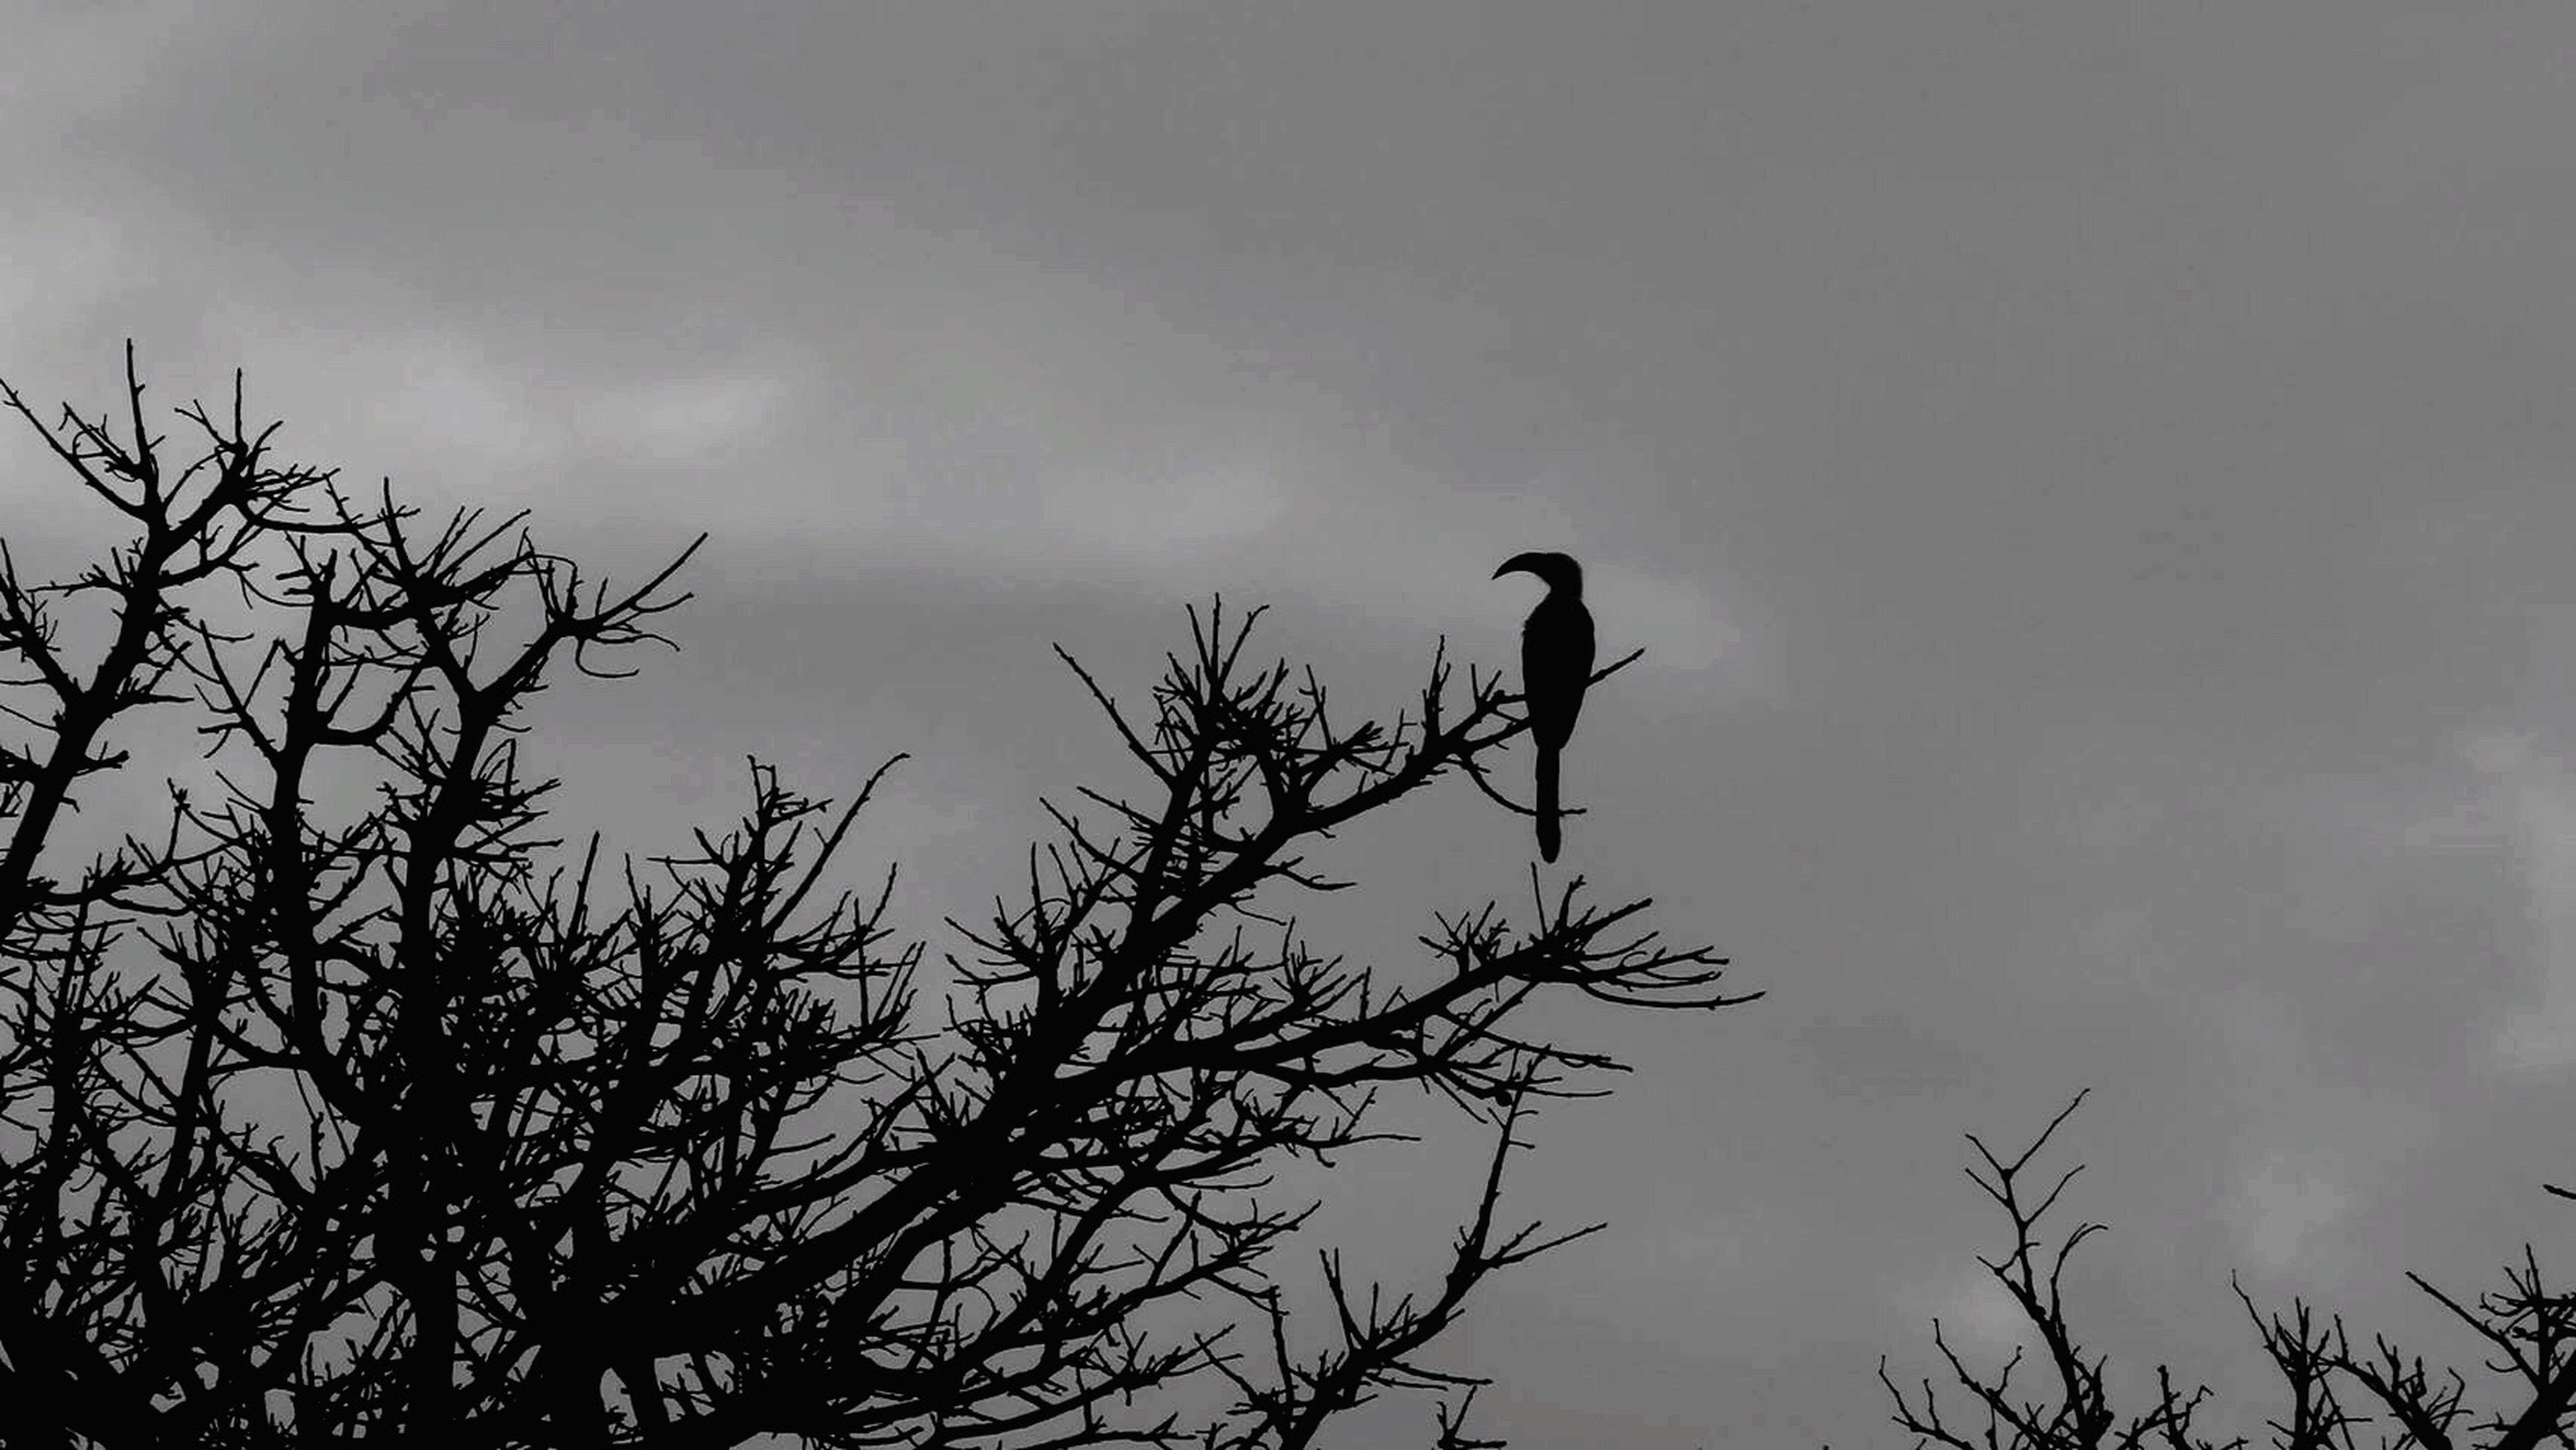 animal themes, bird, low angle view, animals in the wild, silhouette, one animal, wildlife, branch, perching, bare tree, tree, sky, nature, beauty in nature, outdoors, clear sky, dusk, tranquility, no people, day